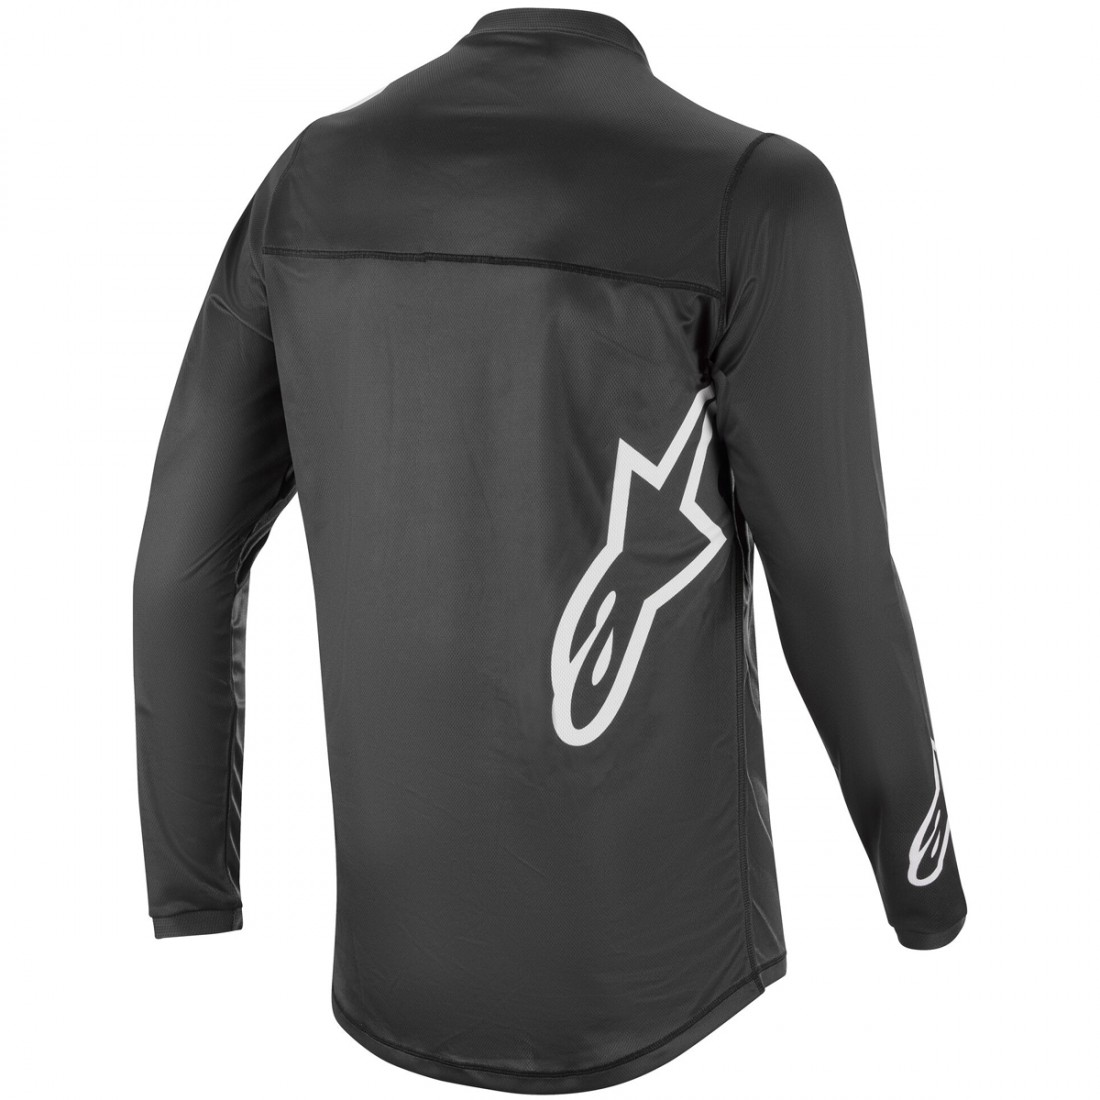 2020 ALPINESTARS RACER braap Tactical GRAPHITE MX MOTOCROSS CROSS JERSEY SHIRT